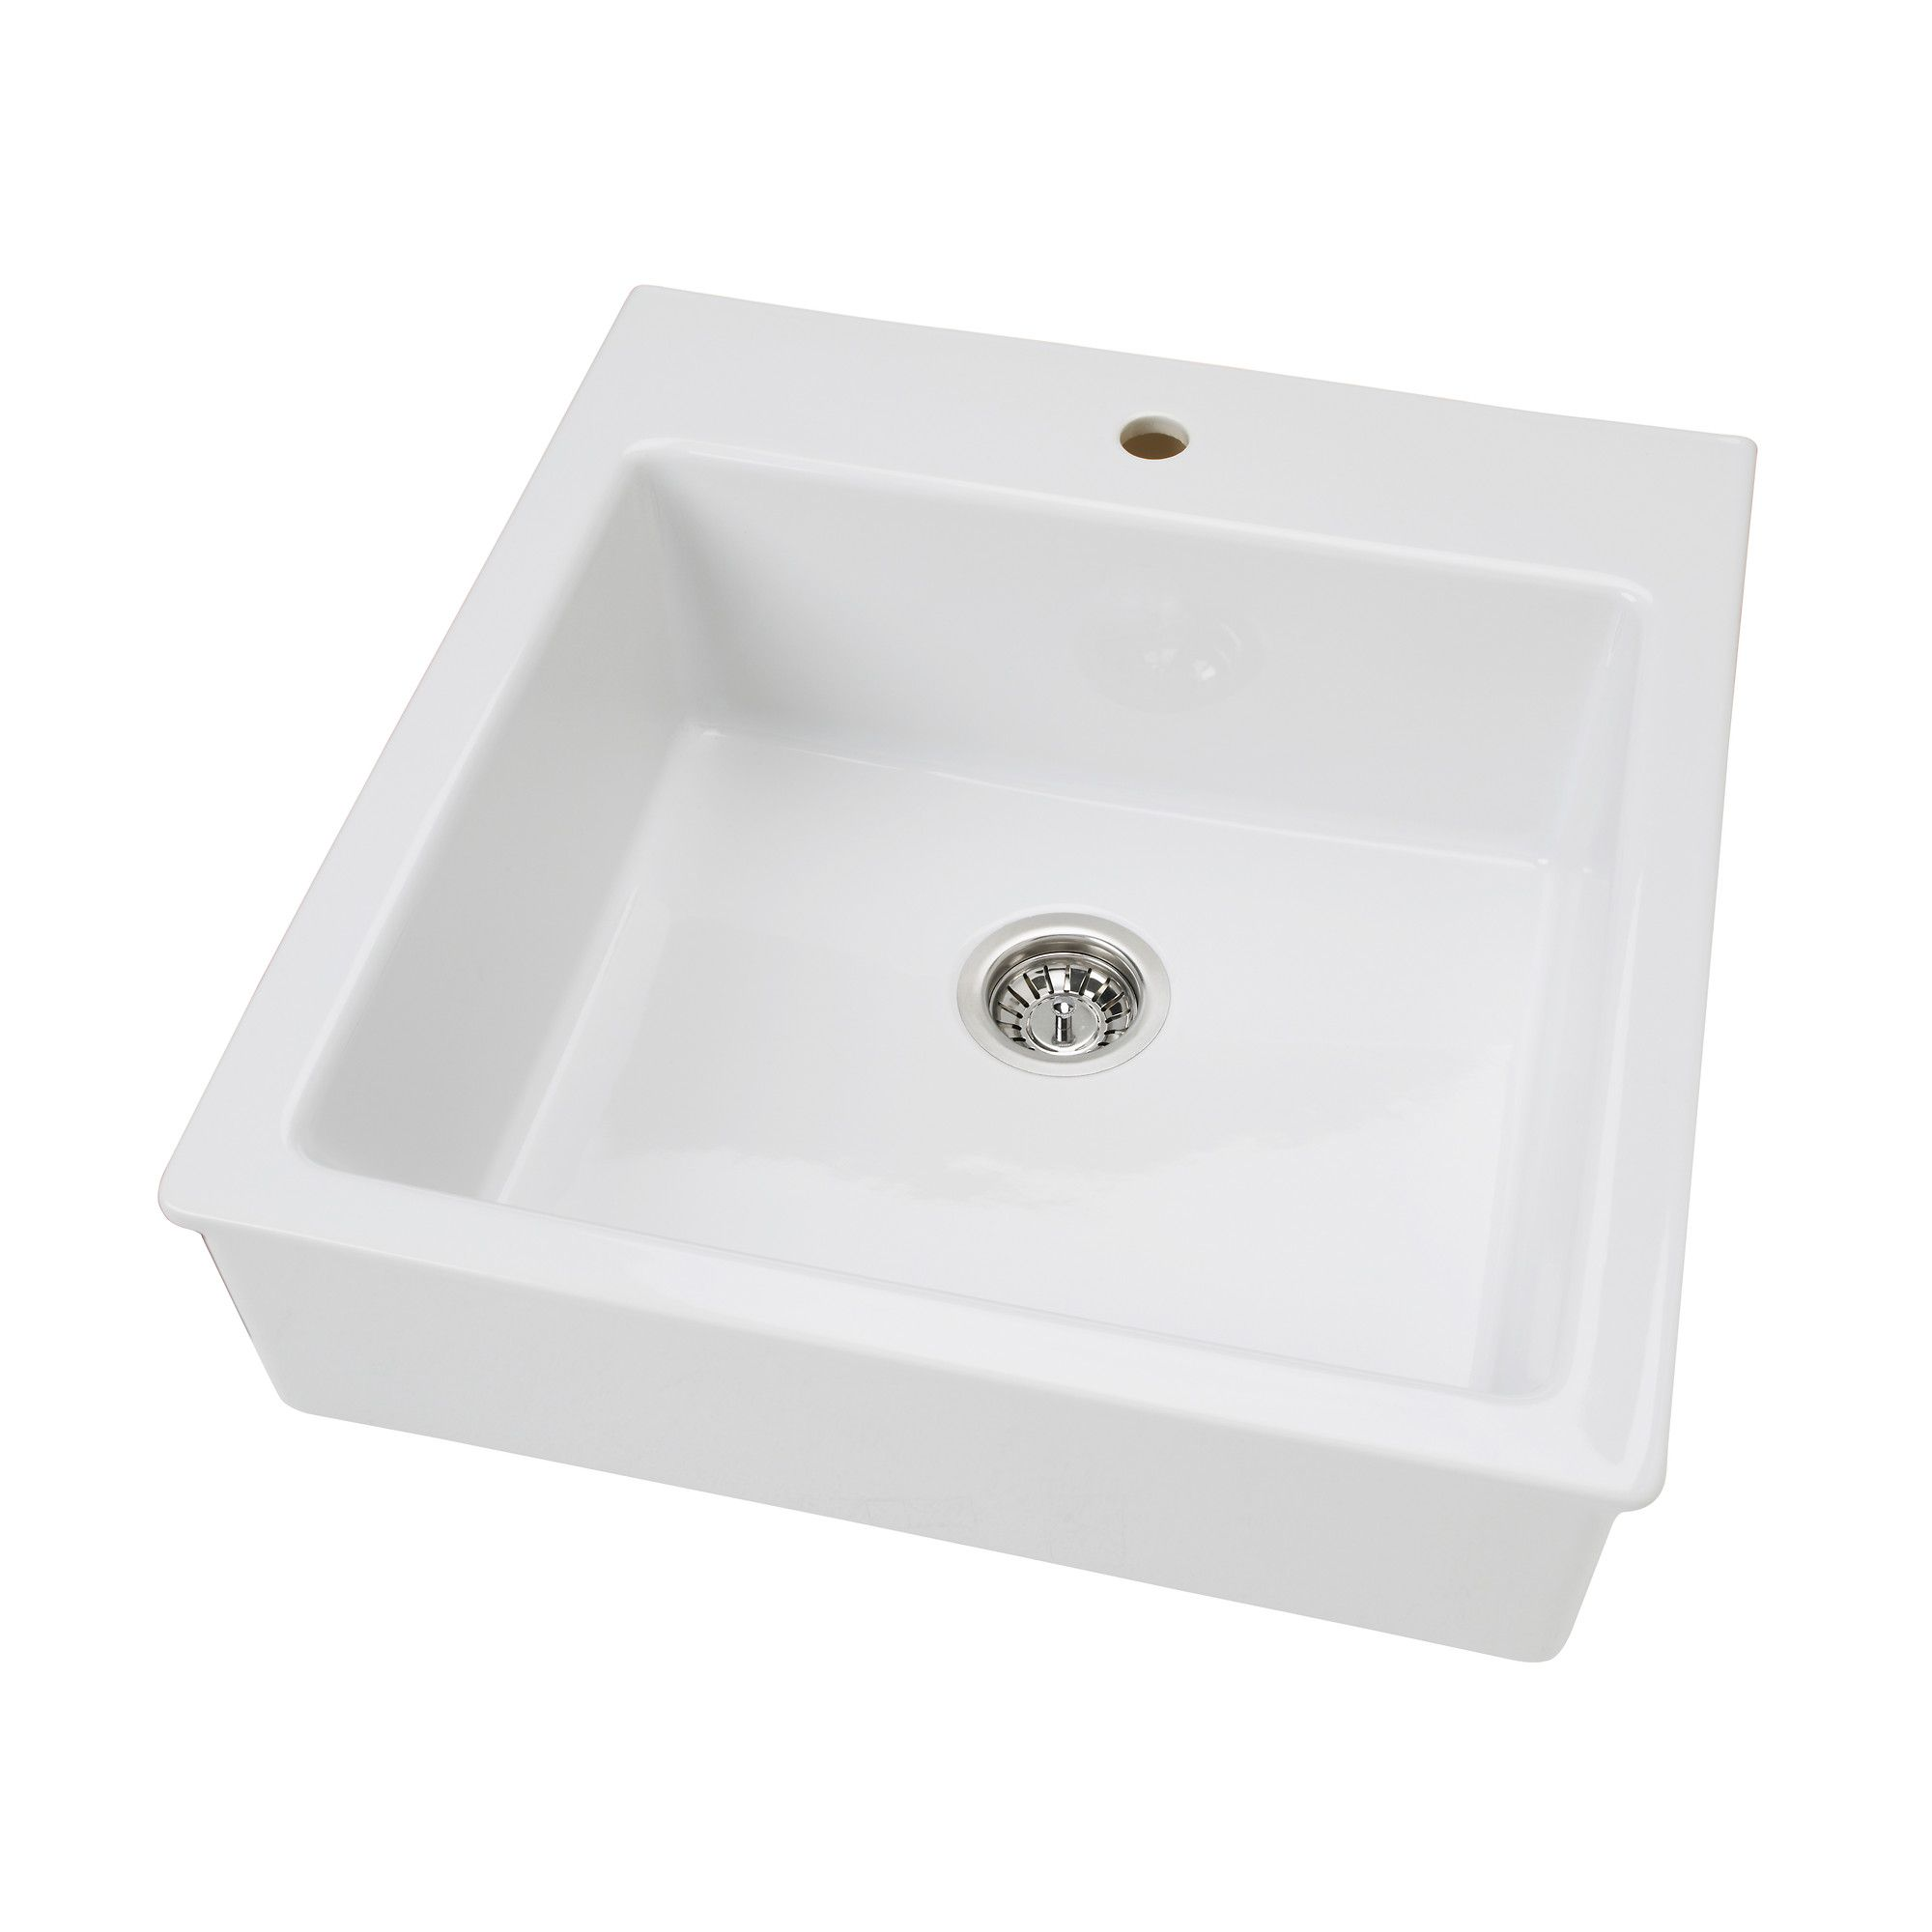 IKEA   DOMSJ   Sink bowl  25 year Limited Warranty  Read about the. RODD Table lamp base  nickel plated   Ikea  Bowls and Sinks